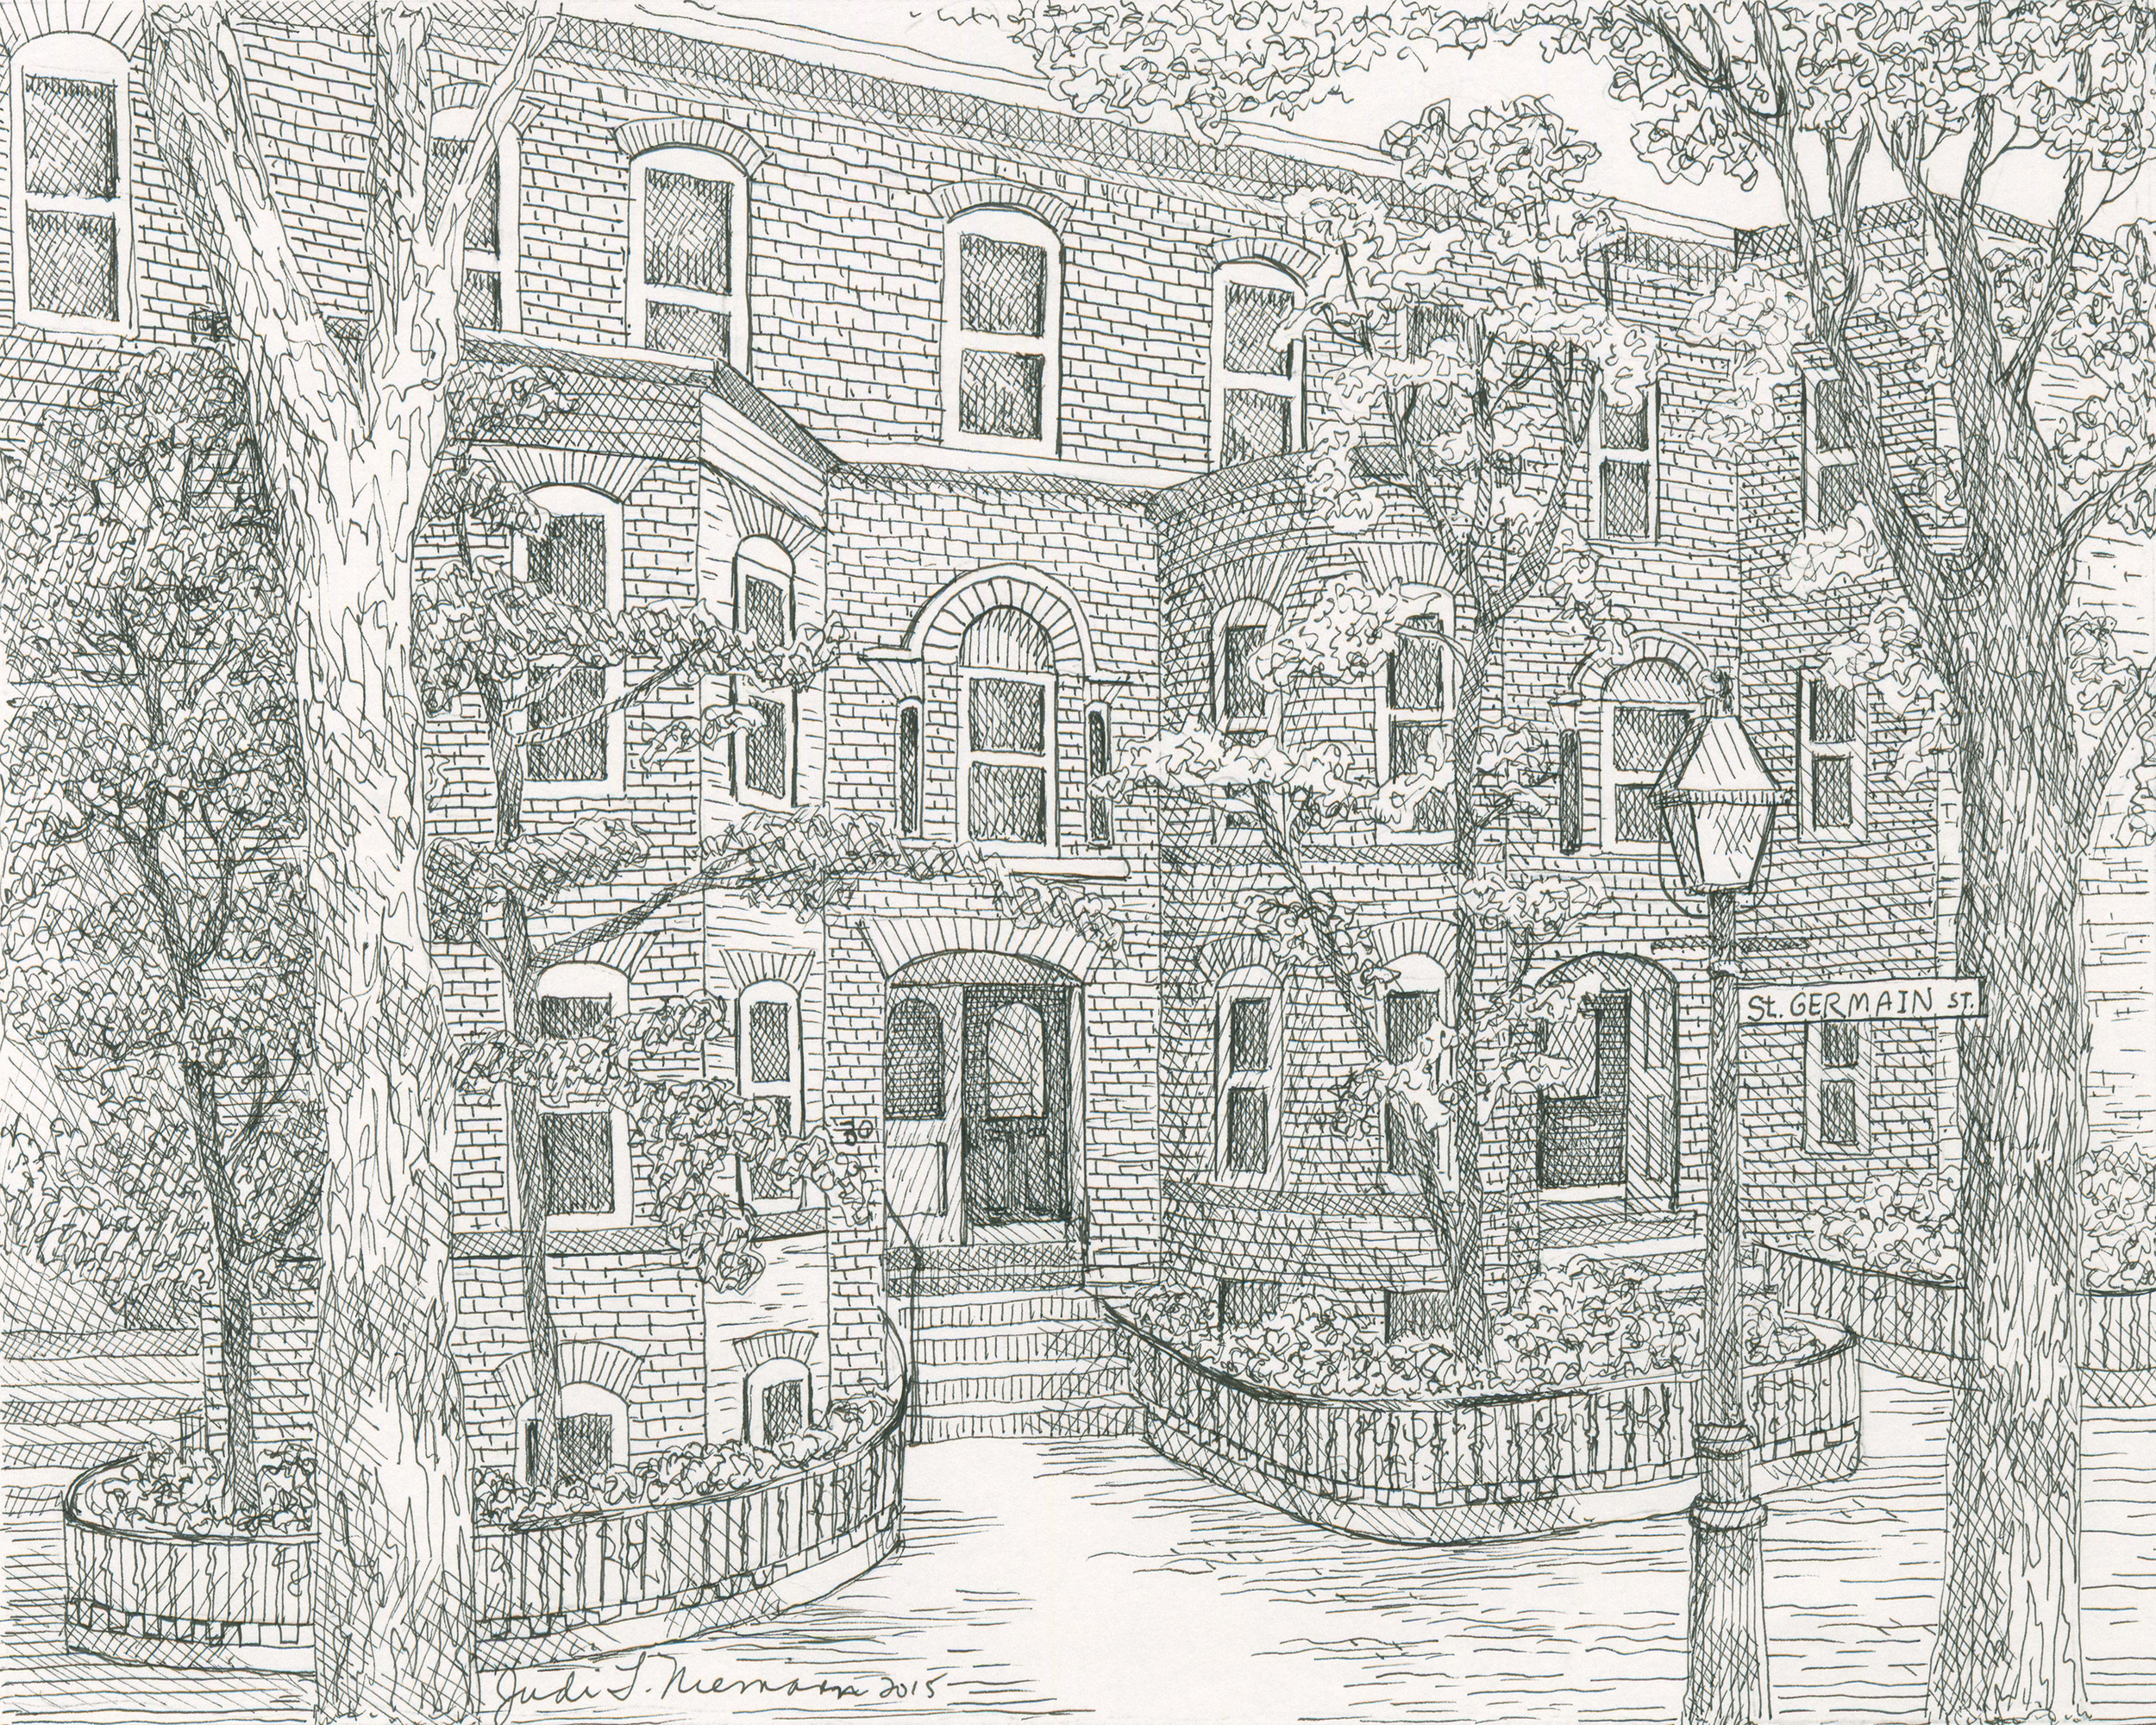 Wedding Present Commission of Home in Boston